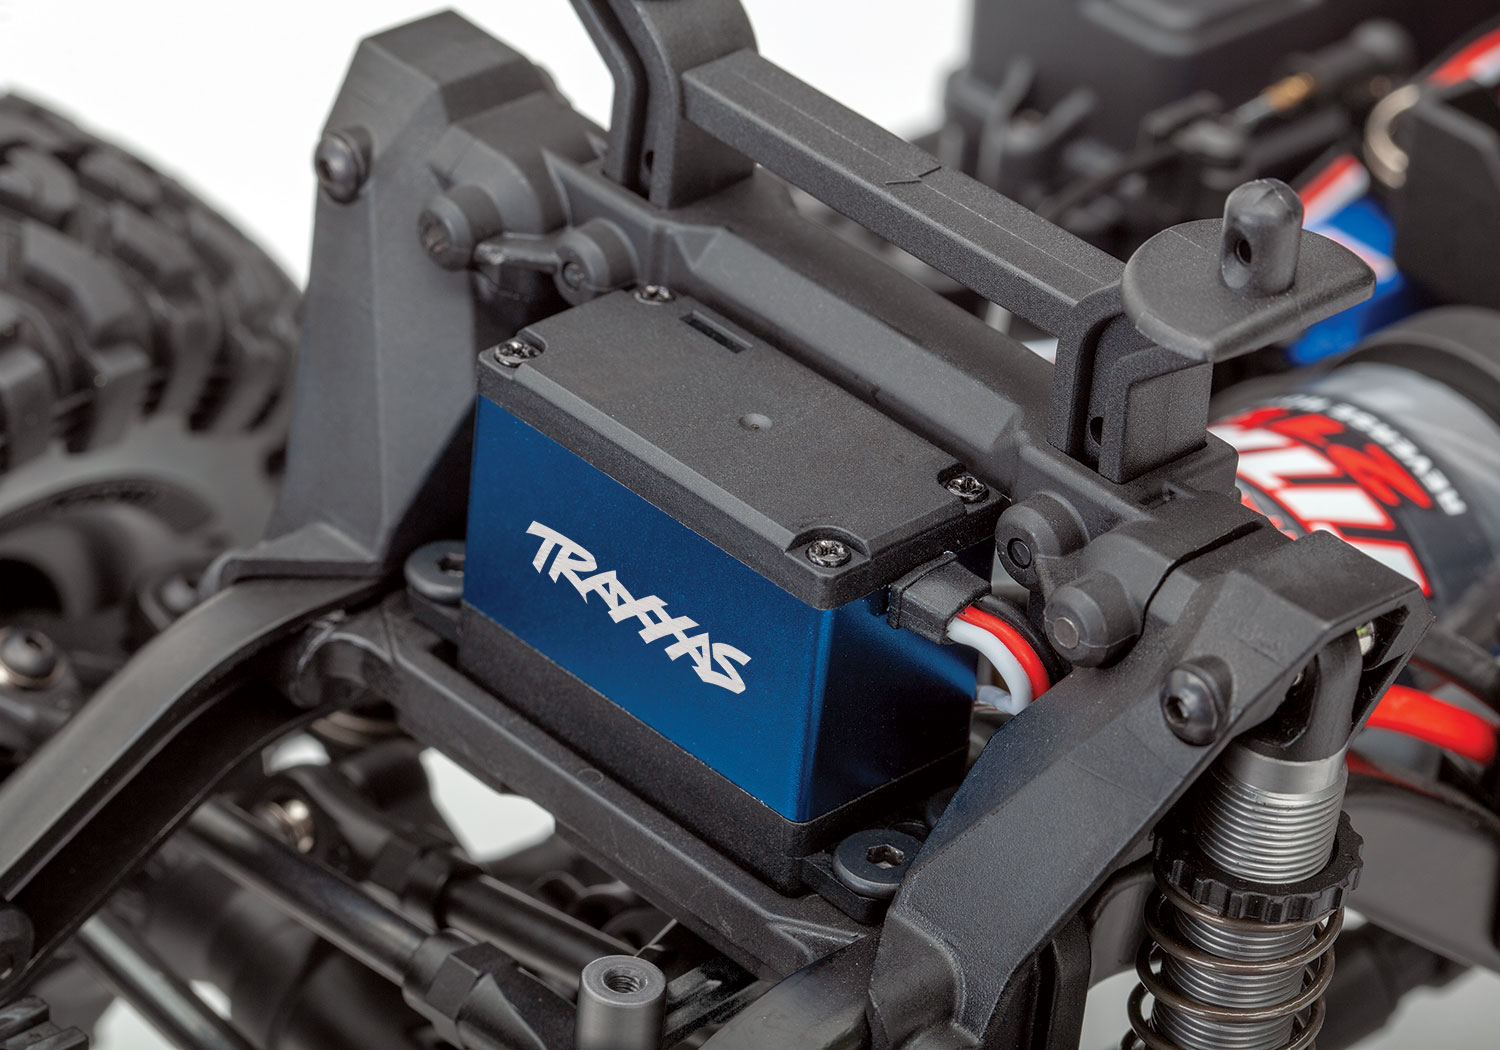 hight resolution of replace the e revo s dual servos with a single trx 2255 for lighter weight more torque and lightning quick steering response